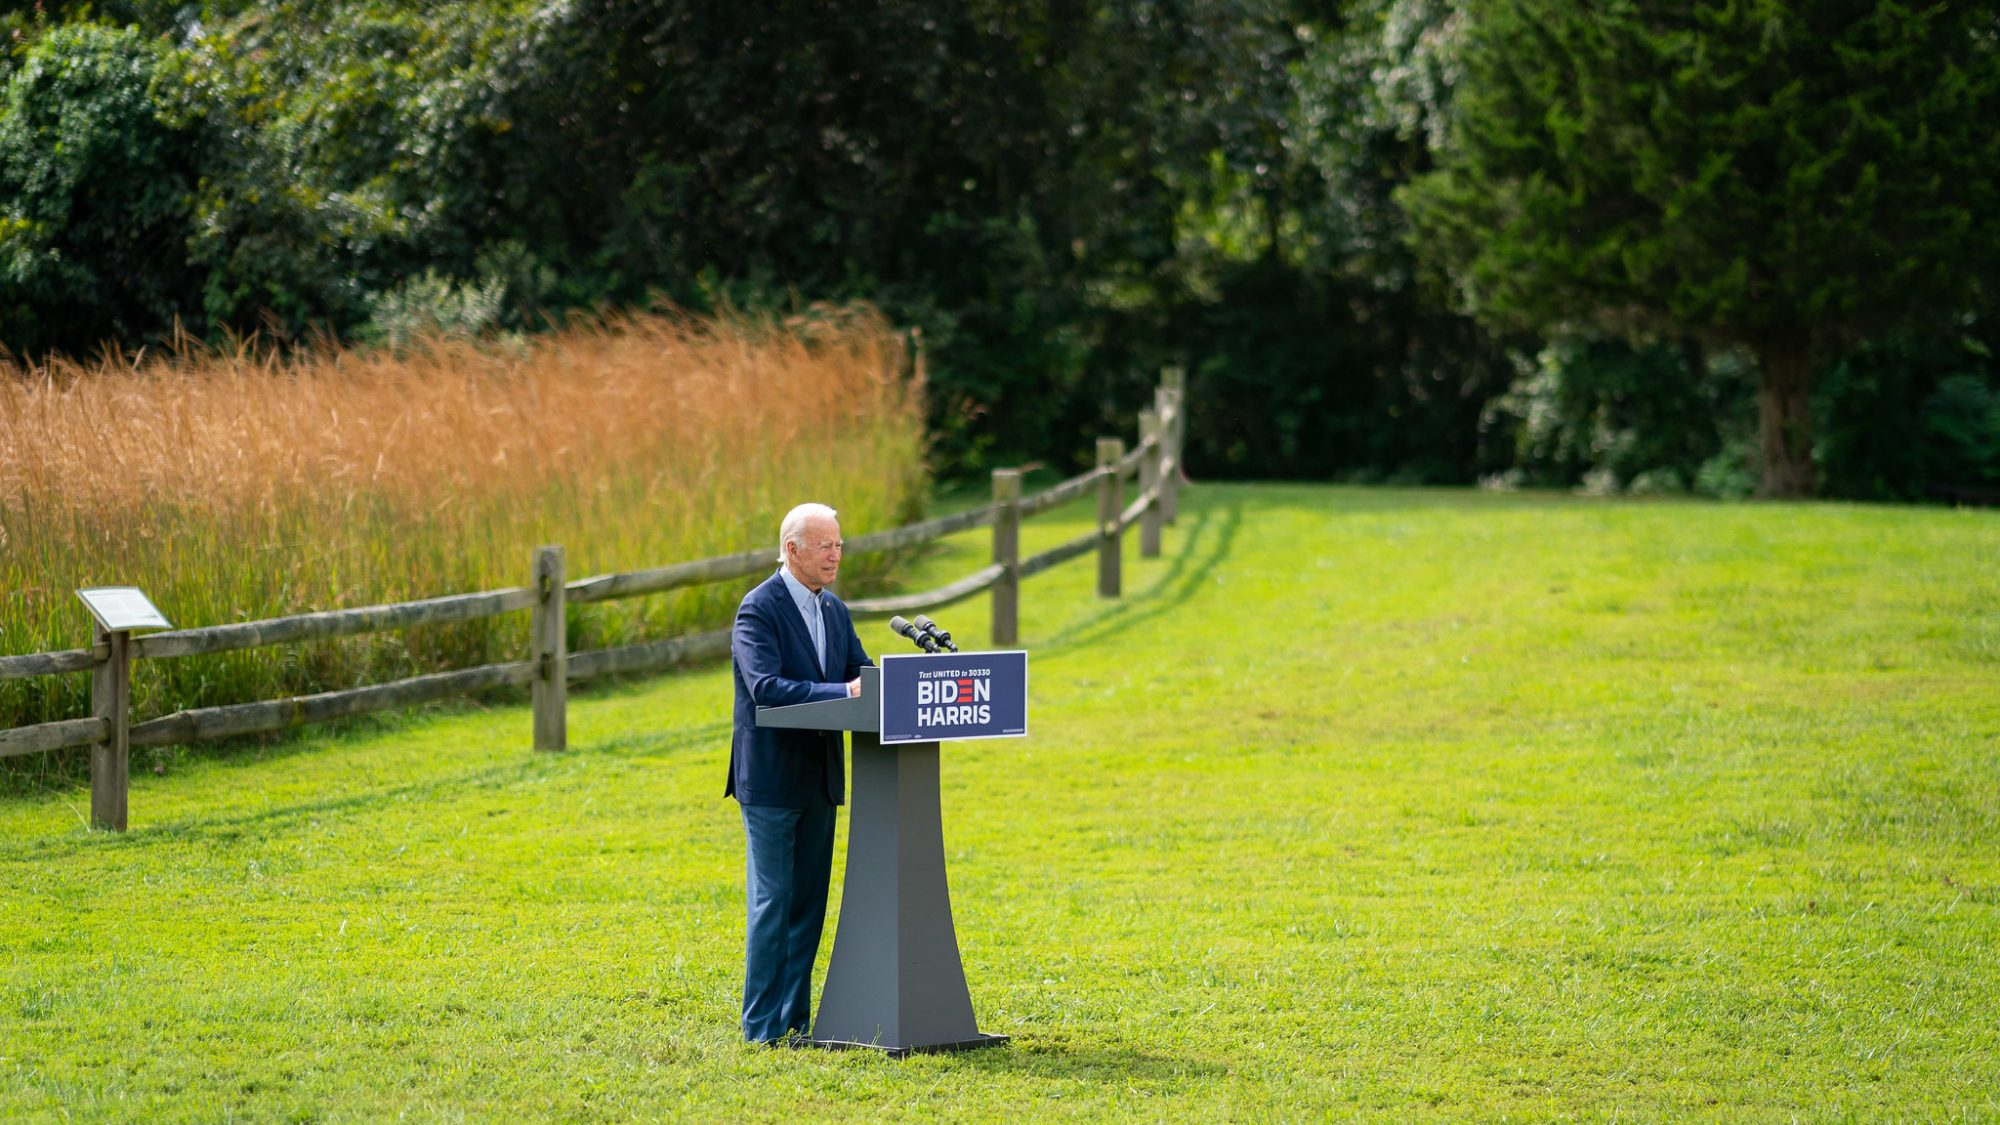 Then-candidate Joe Biden giving a speech on the environment